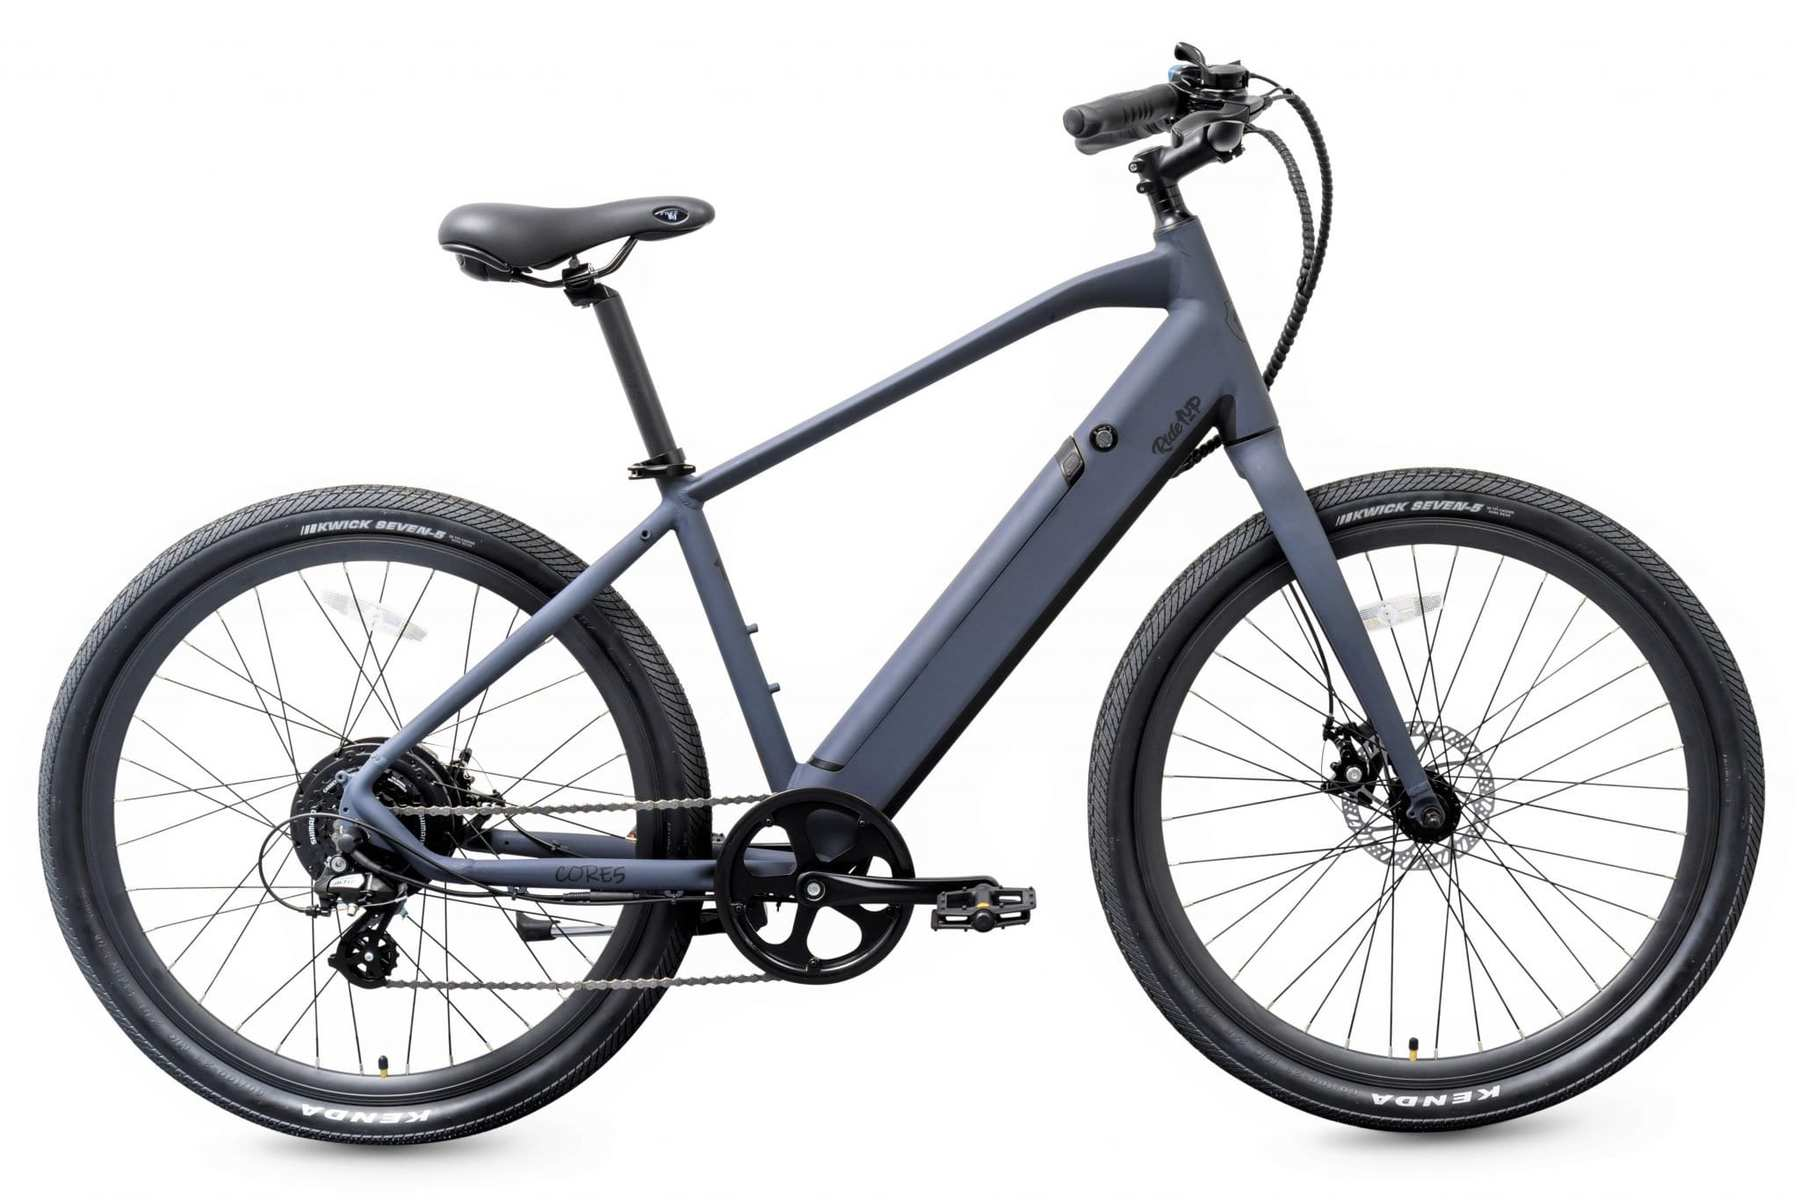 5 Of The Best Cheap Electric Bikes In 2020 Reviews And Ratings